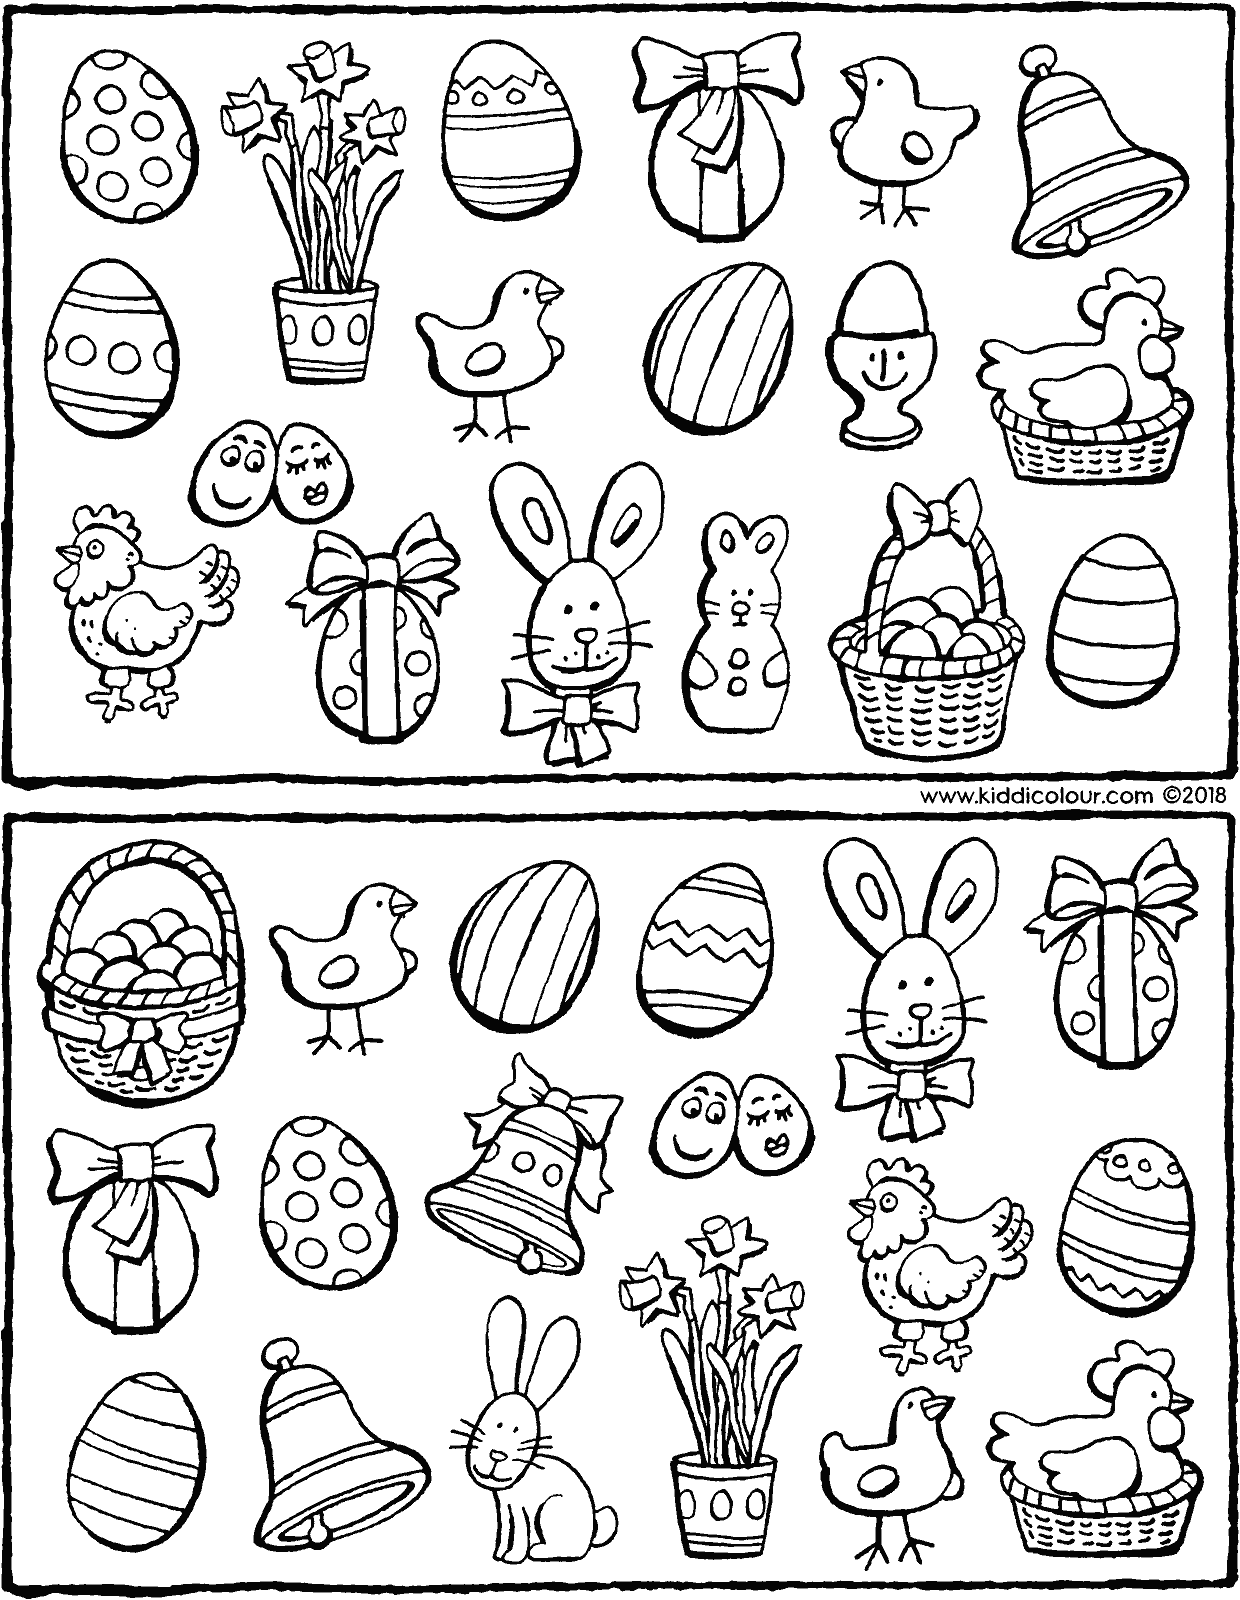 exercise spot the 11 objects that are the same colouring page drawing picture 01V